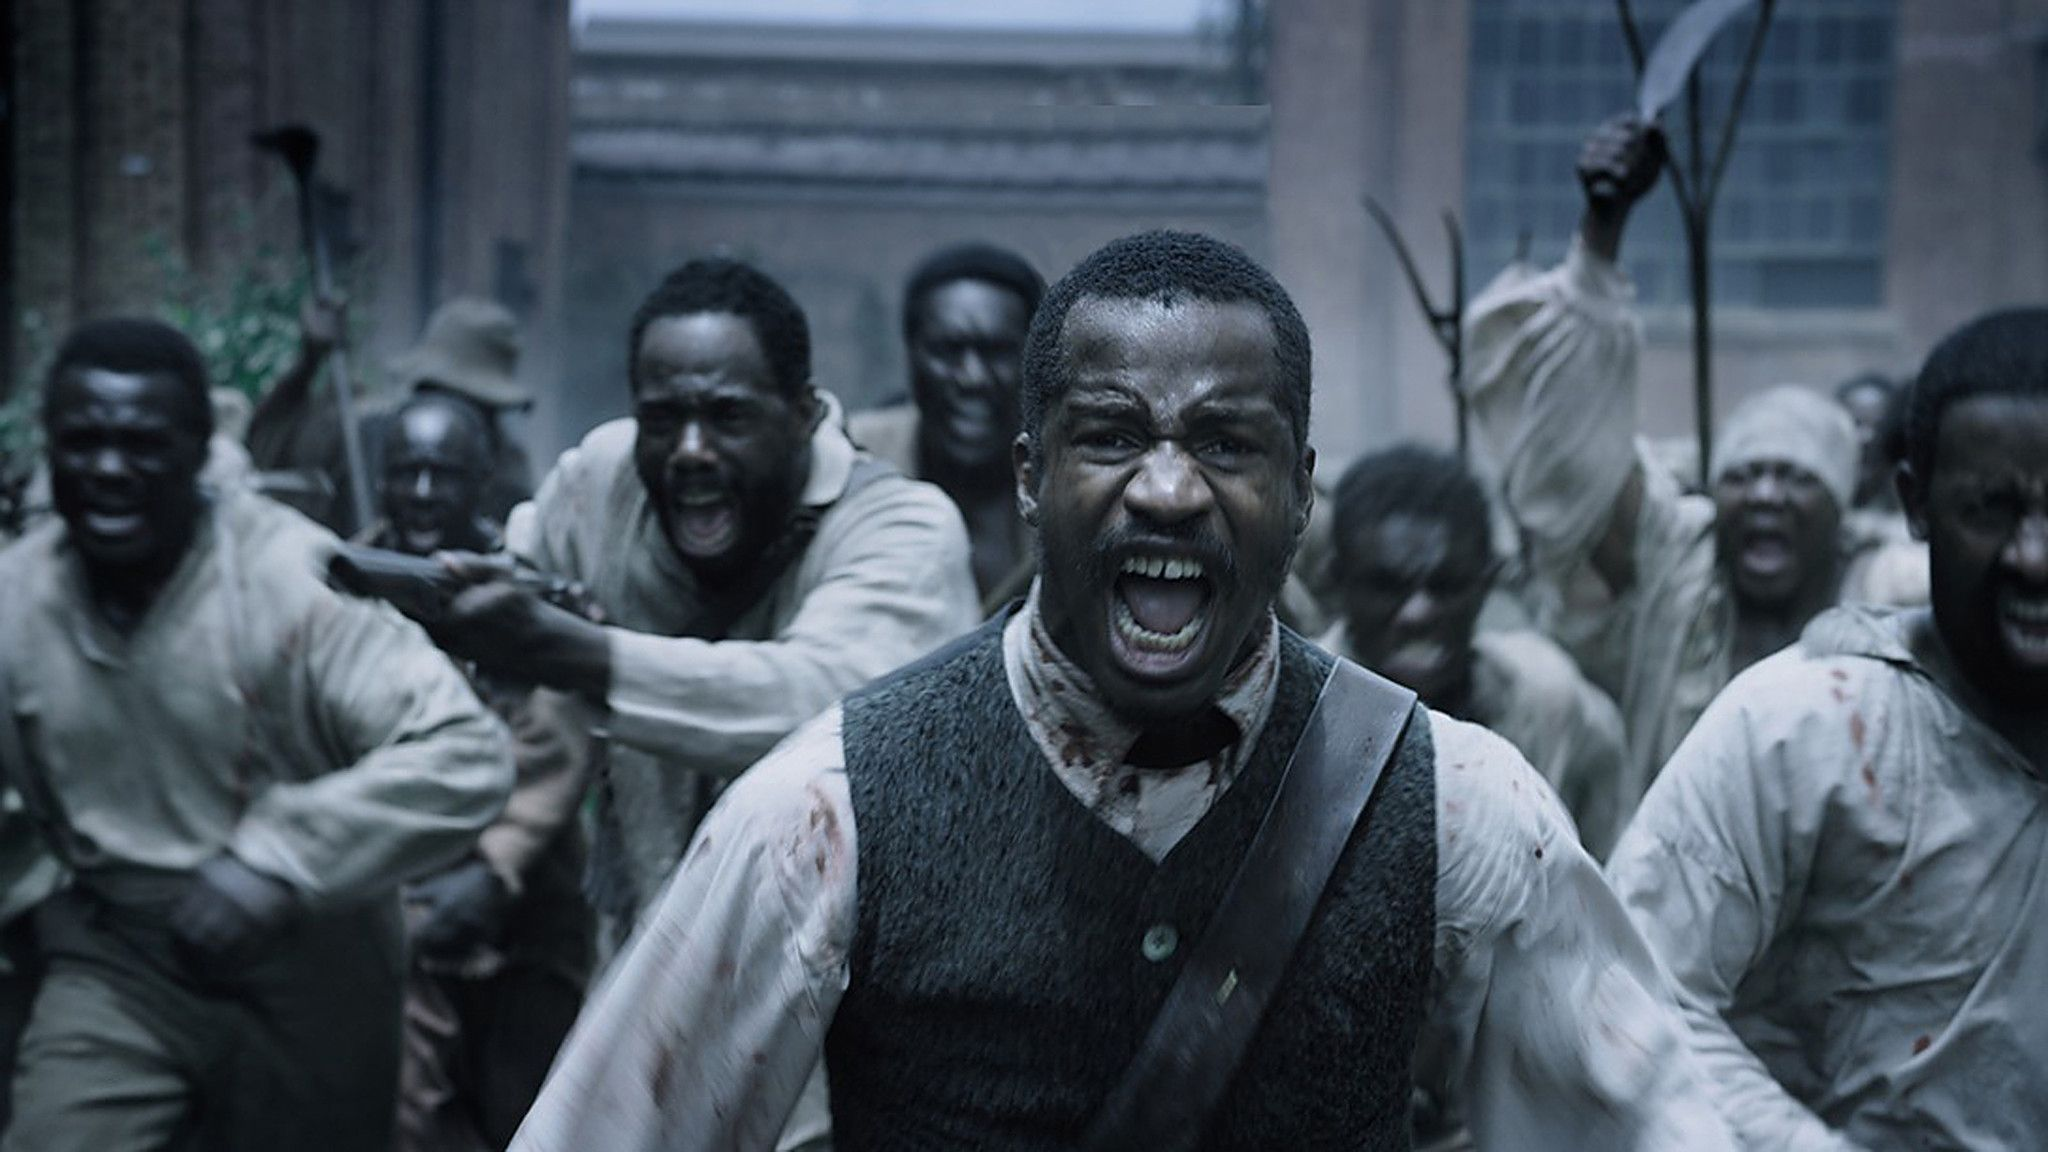 """<p>Based on the true story ofNat Turner's 1831 slave rebellion in Virginia, <em data-redactor-tag=""""em"""" data-verified=""""redactor"""">The</em><i data-redactor-tag=""""i"""">Birth of a Nation</i>follows a young Turner (Nate Parker) as he trains to become a preacher, ventures across the nation to preach, realizes just how widespread and violent slavery has becomeand ultimately takes action. Armie Hammer, Aja Naomi King, and Gabrielle Union also star in the film, which is the most expensive ever sold at Sundance Film Festival.</p><p>Watch the trailer<a href=""""https://www.youtube.com/watch?v=i18z1EQCoyg"""" target=""""_blank"""">here</a>.</p>"""